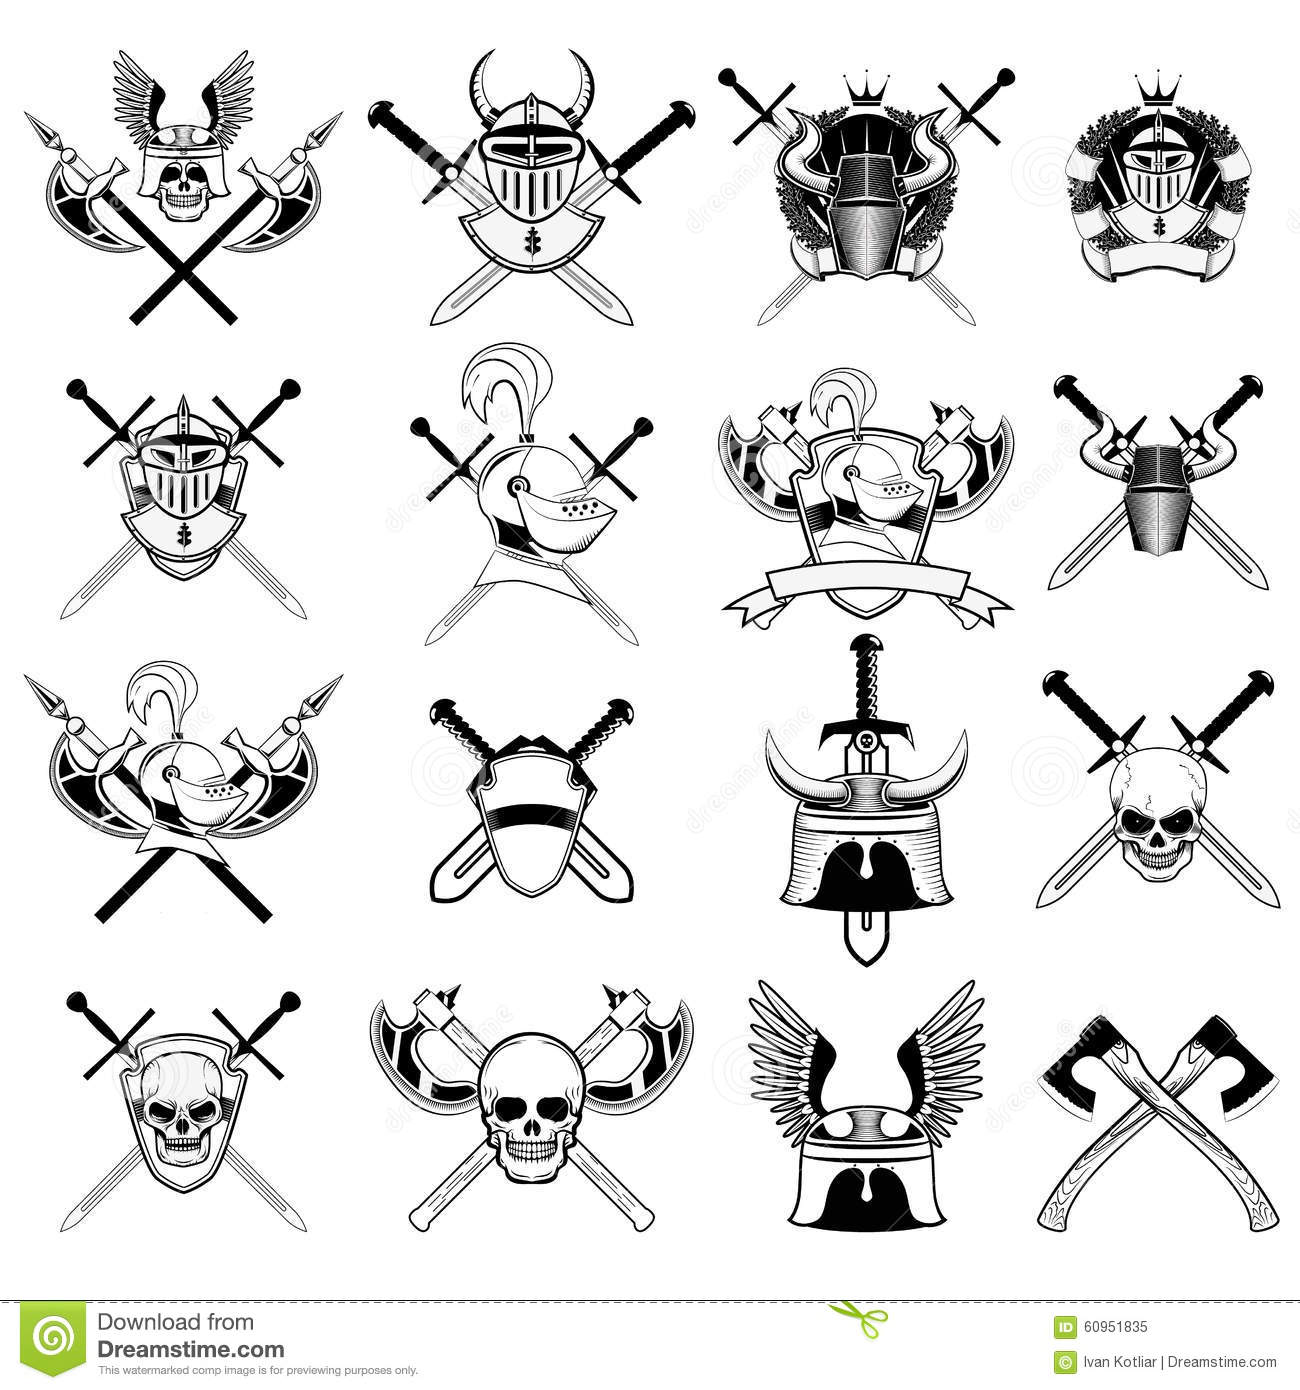 Knight Skull Helmet And Chainmail Royalty Free Stock Image